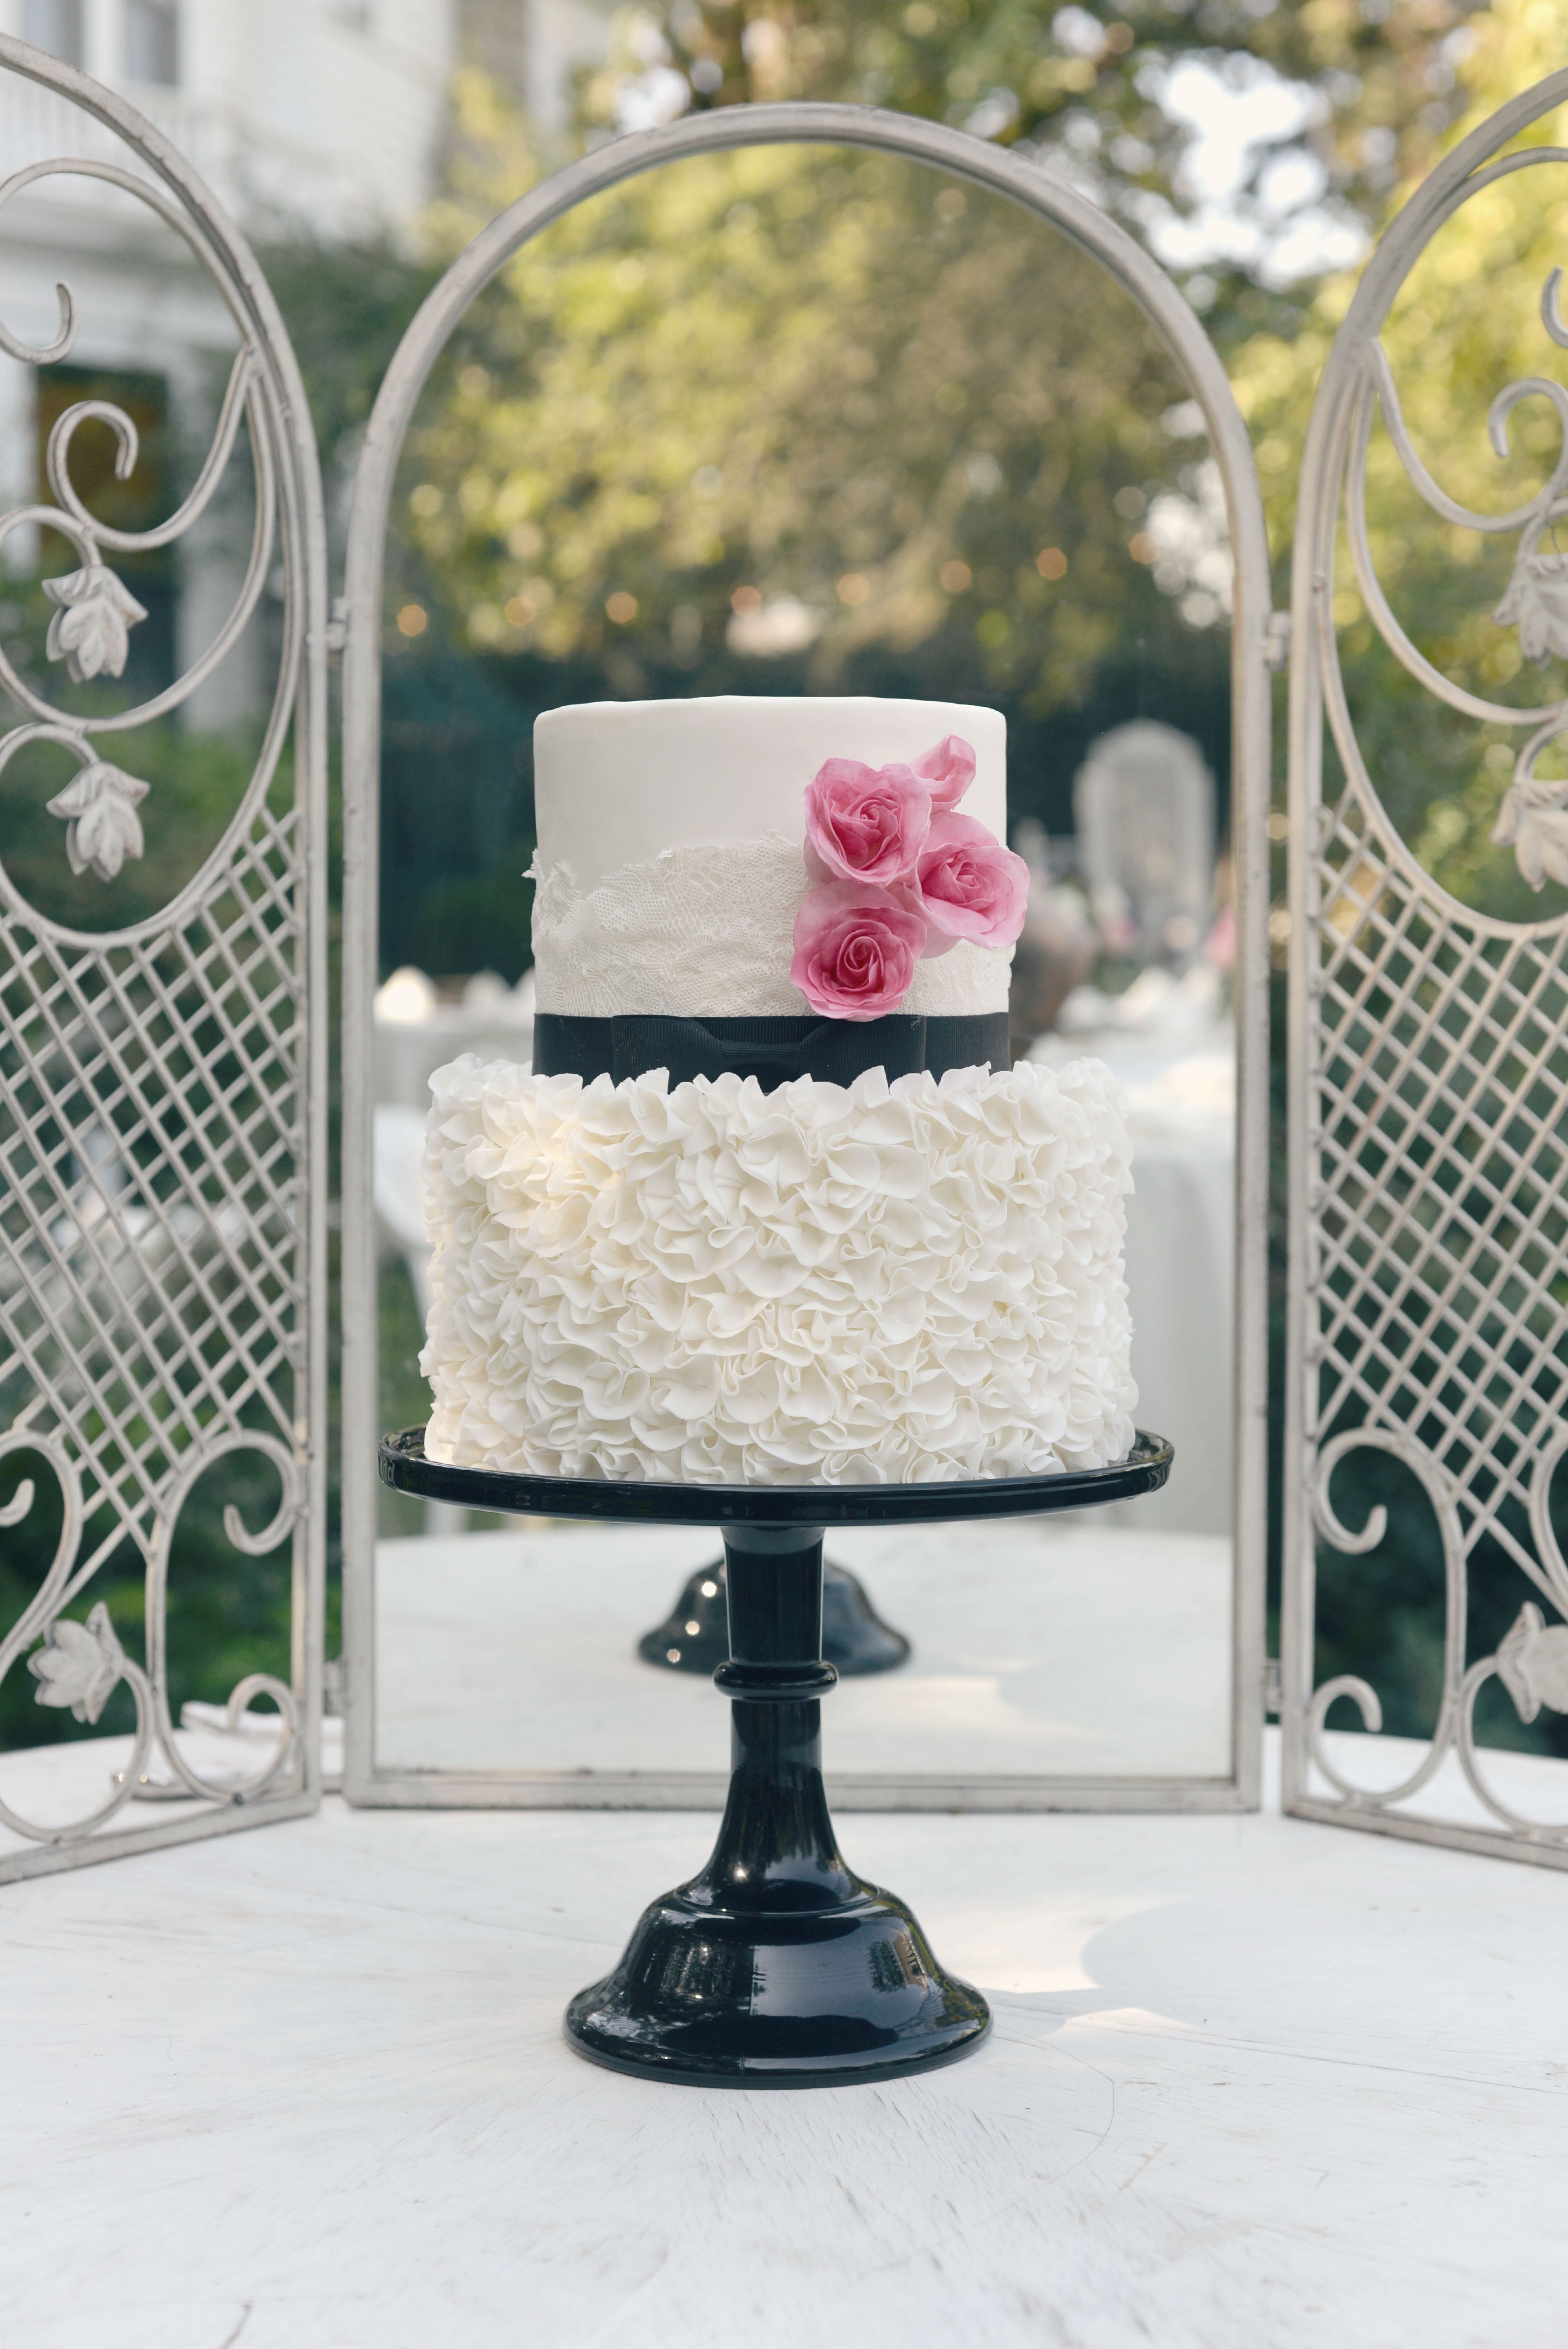 Formal white wedding cake with black ribbon and fushia sugar formal white wedding cake with black ribbon and fushia sugar flowers and white sugar lace dhlflorist Image collections